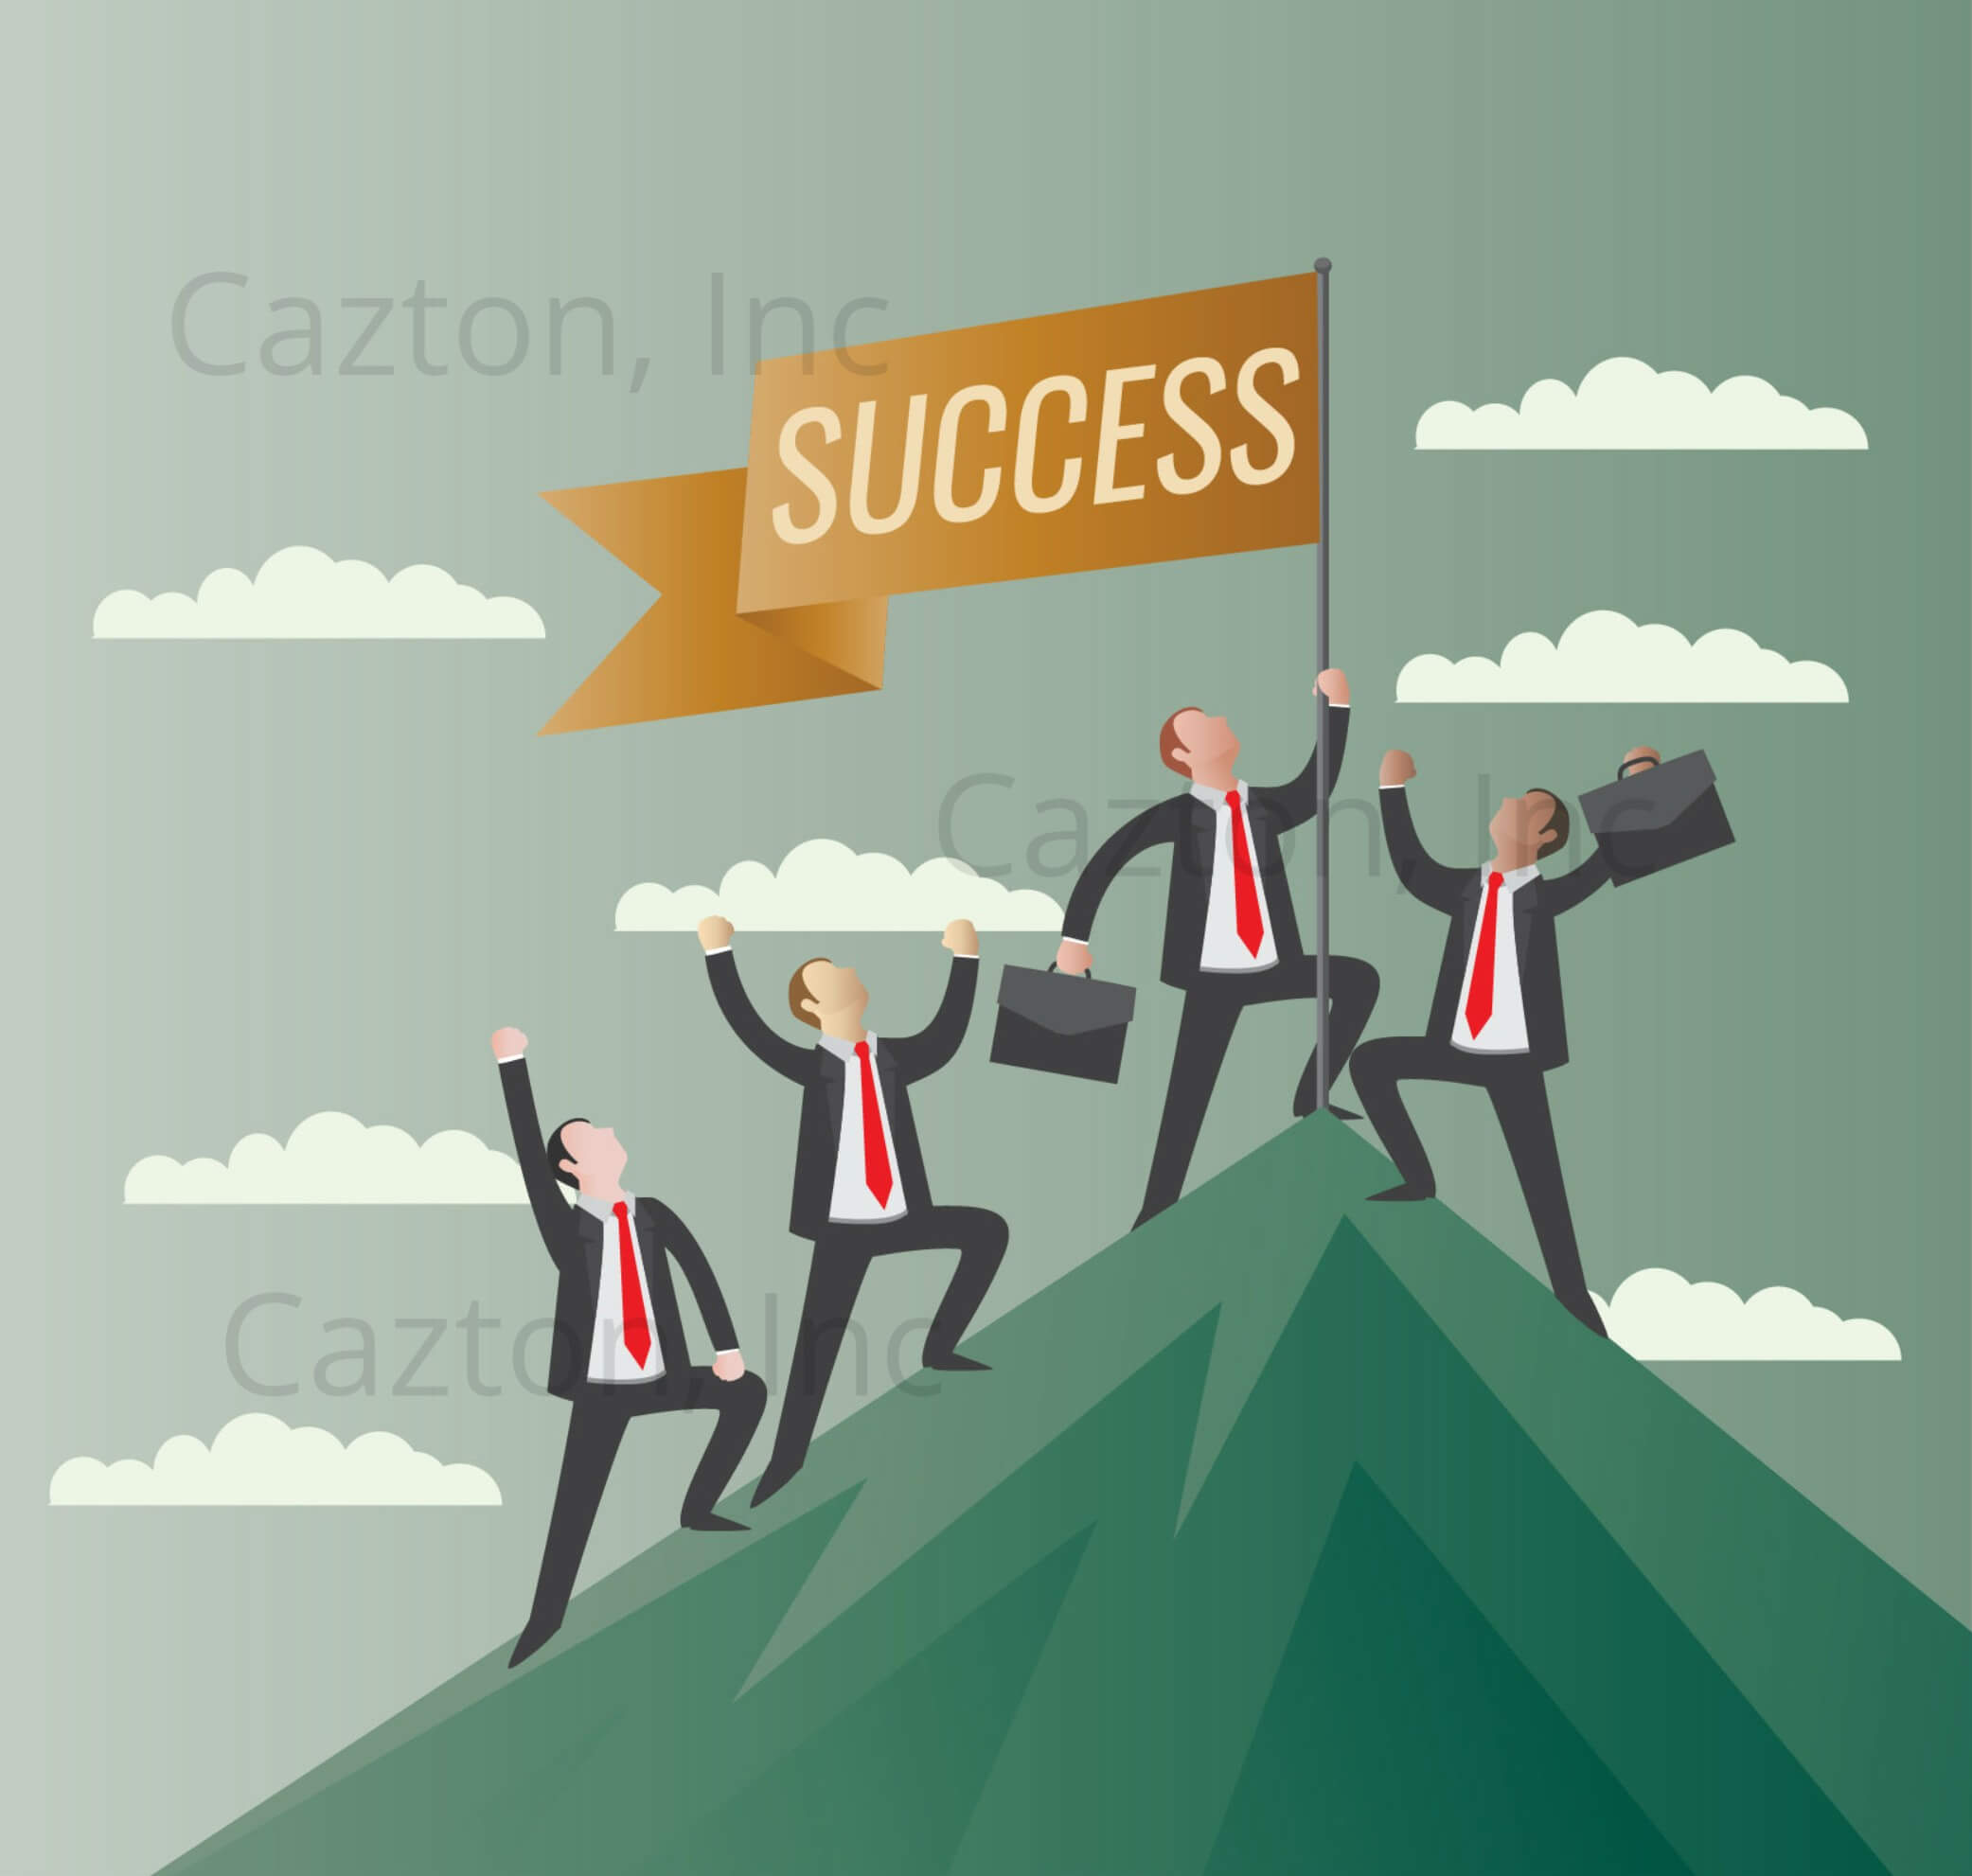 Cazton Microsoft Success Story